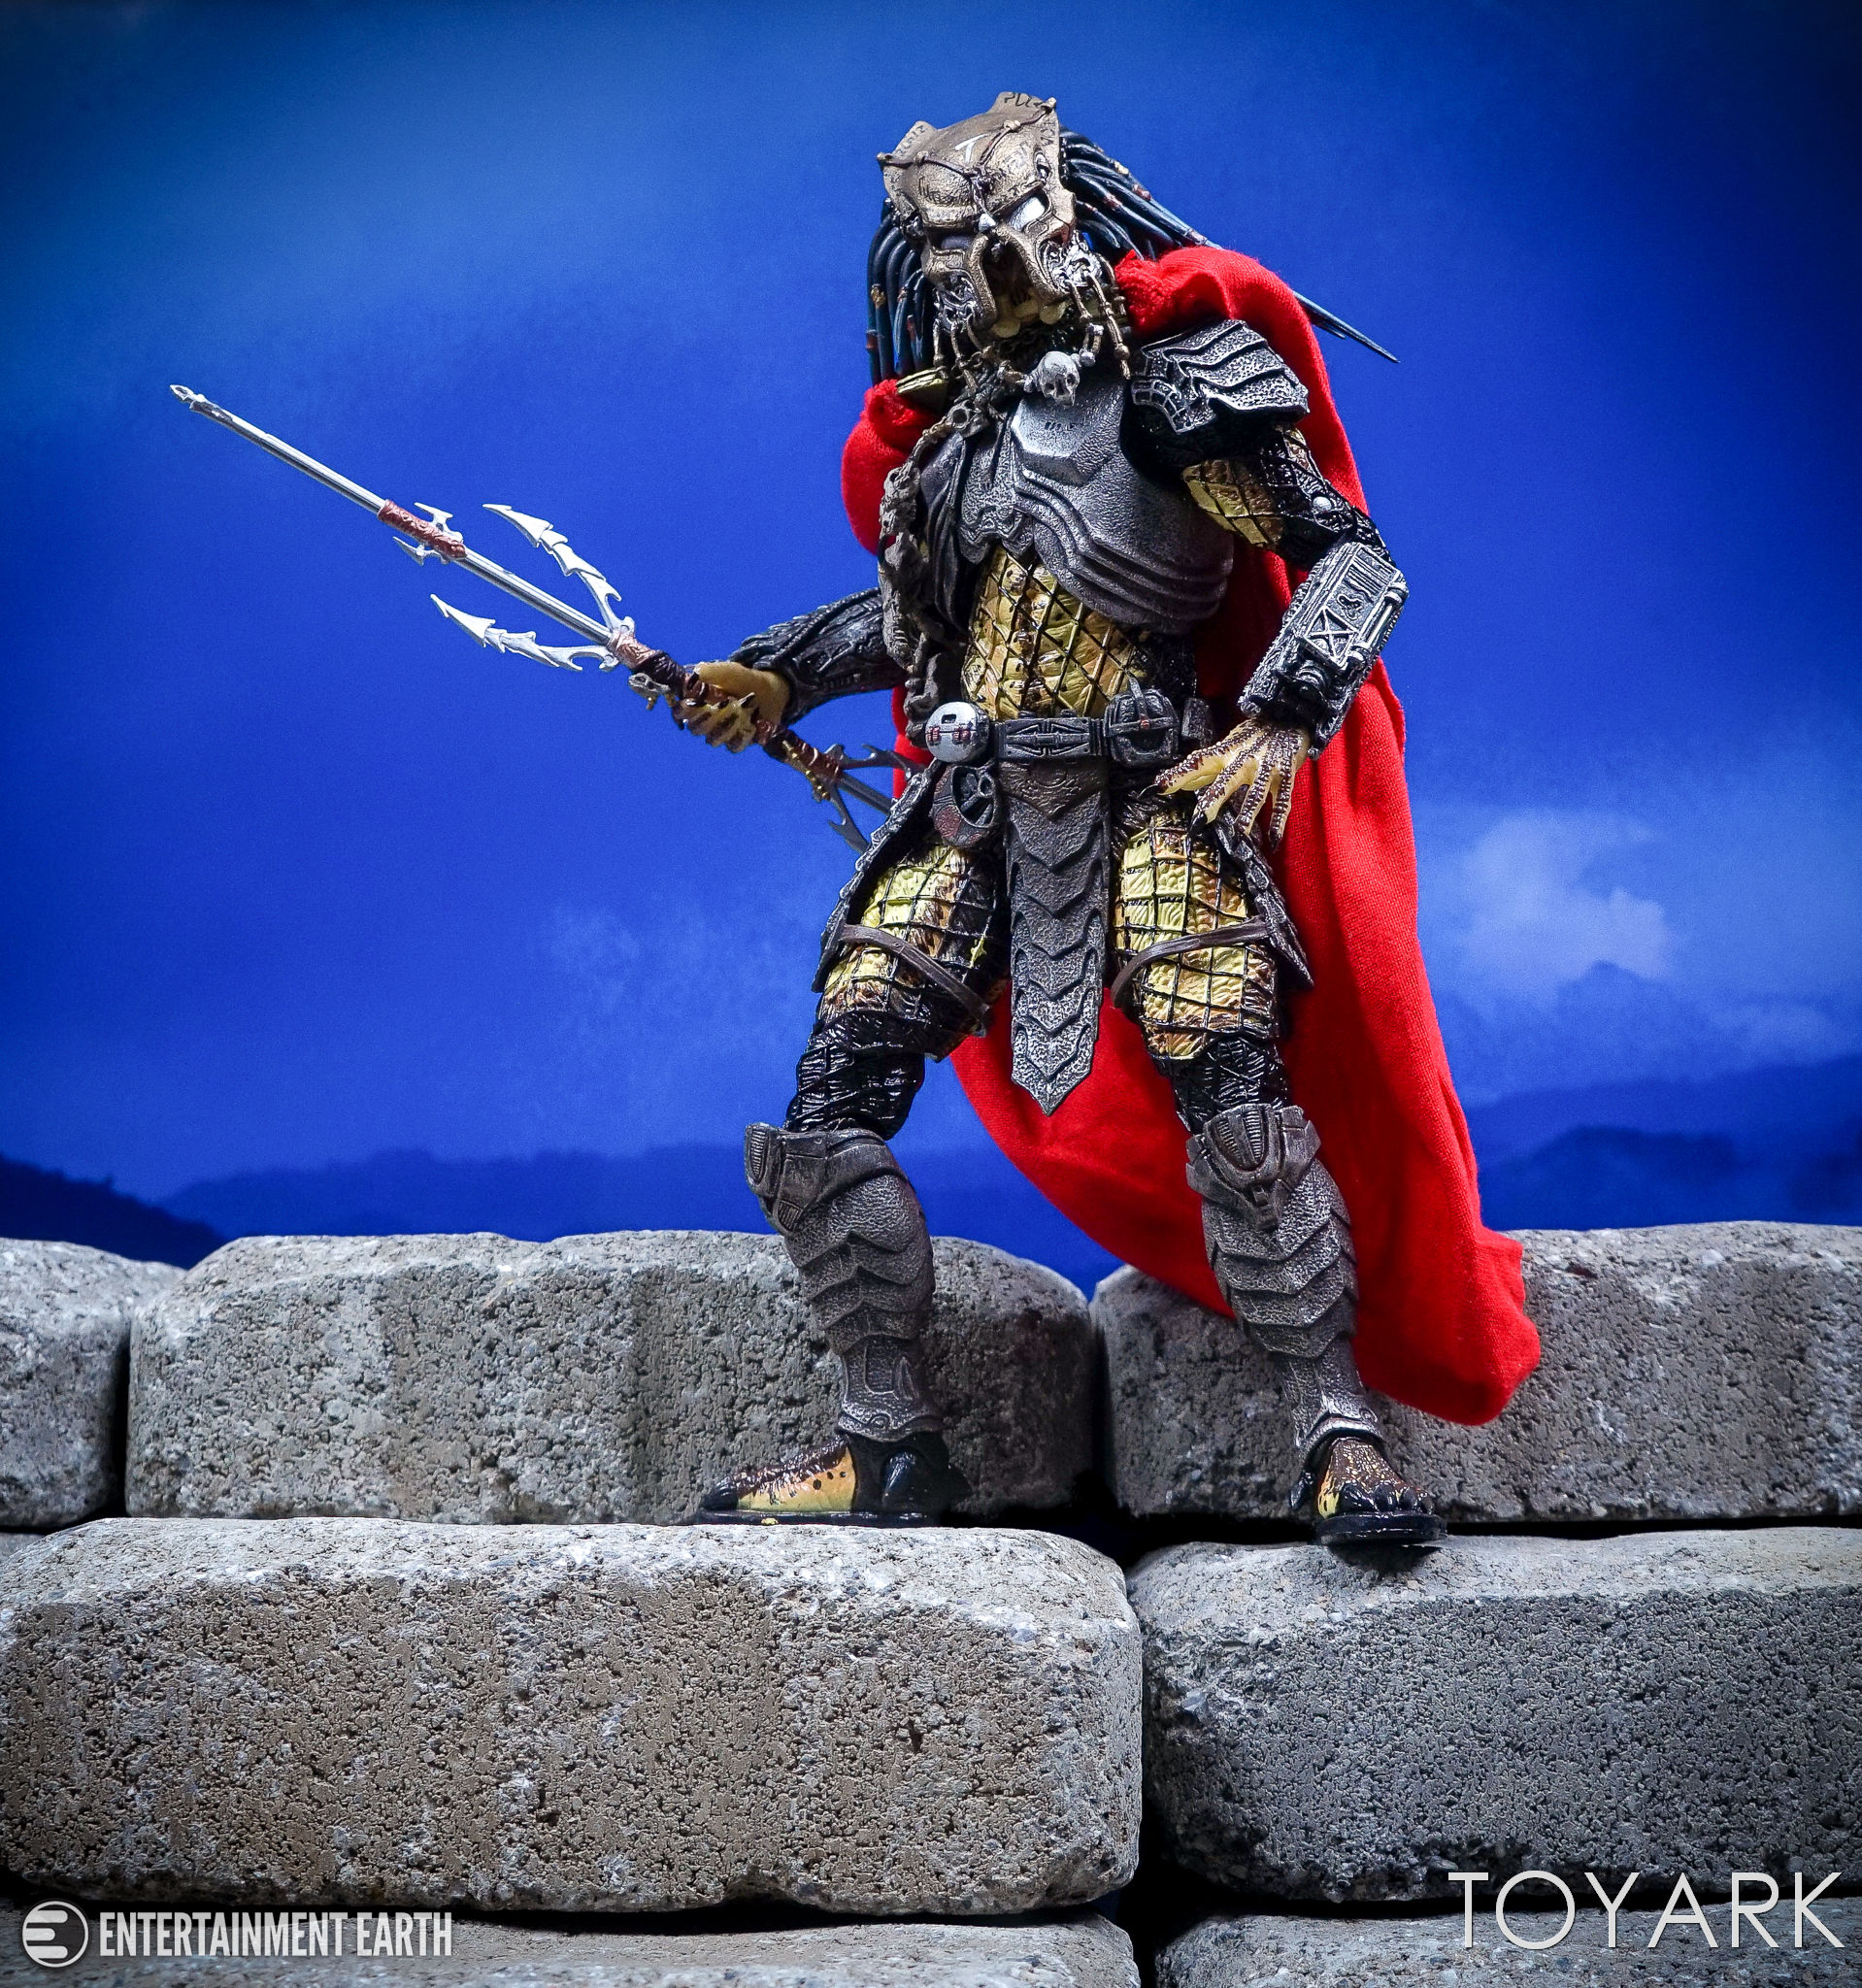 http://news.toyark.com/wp-content/uploads/sites/4/2017/04/NECA-Elder-Predator-030.jpg